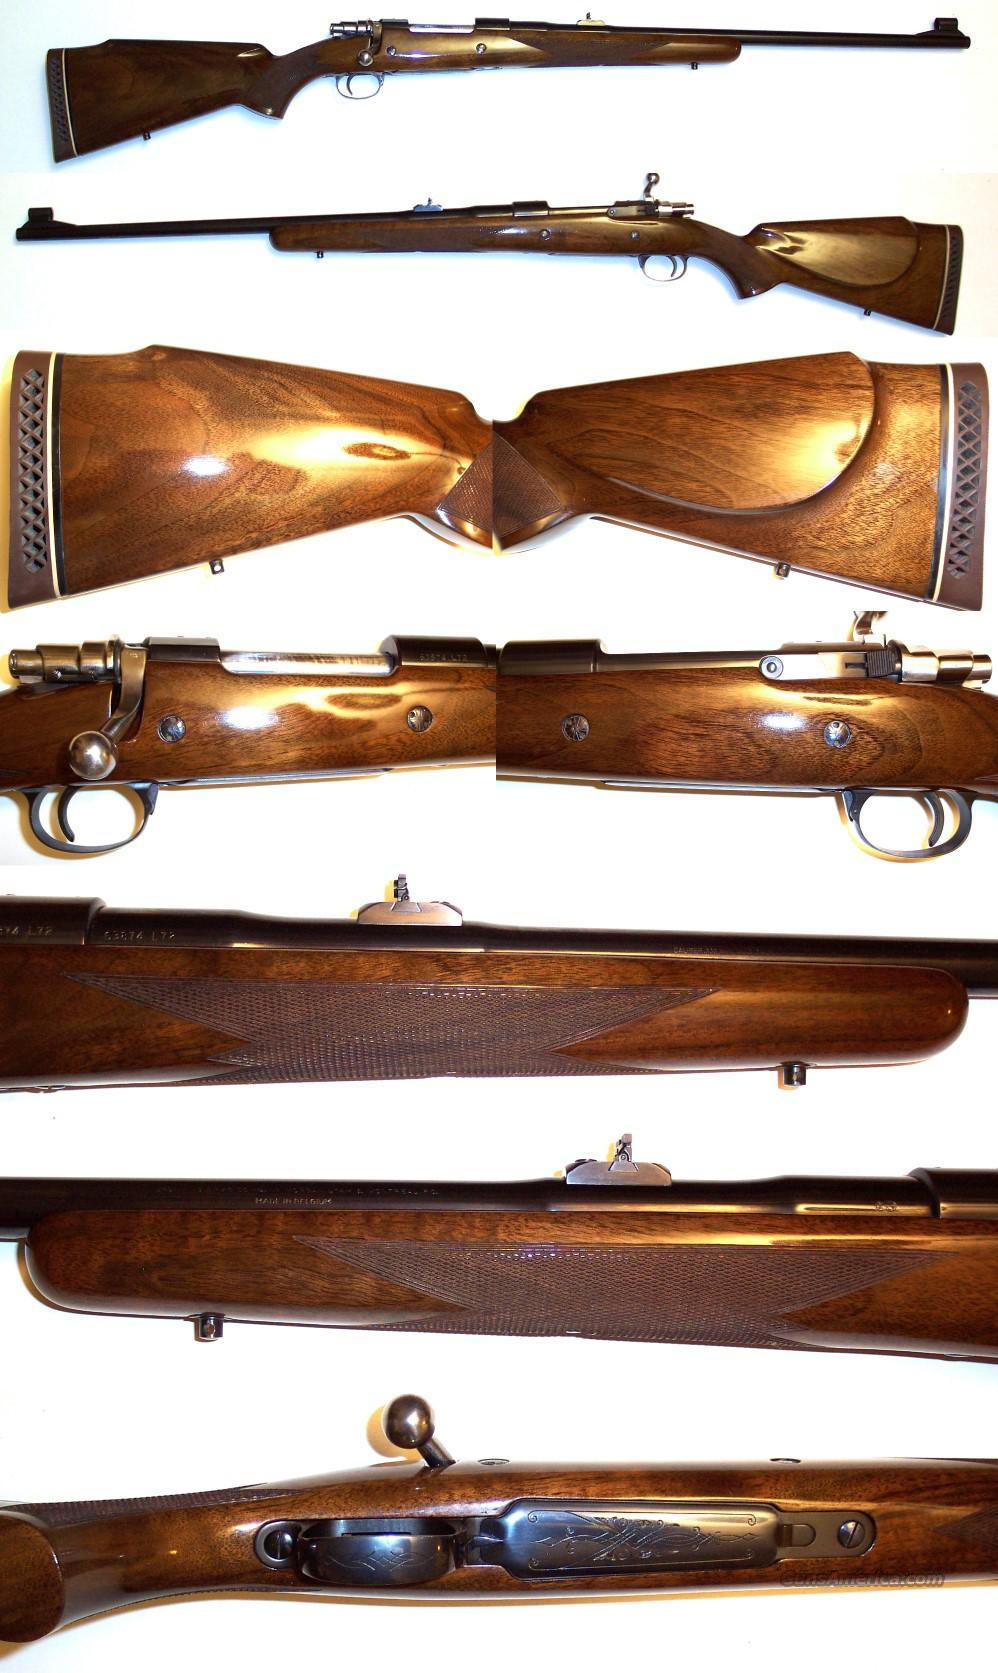 '72 Belgium Browning Safari Grade 300 Win  Guns > Rifles > Browning Rifles > Bolt Action > Hunting > Blue